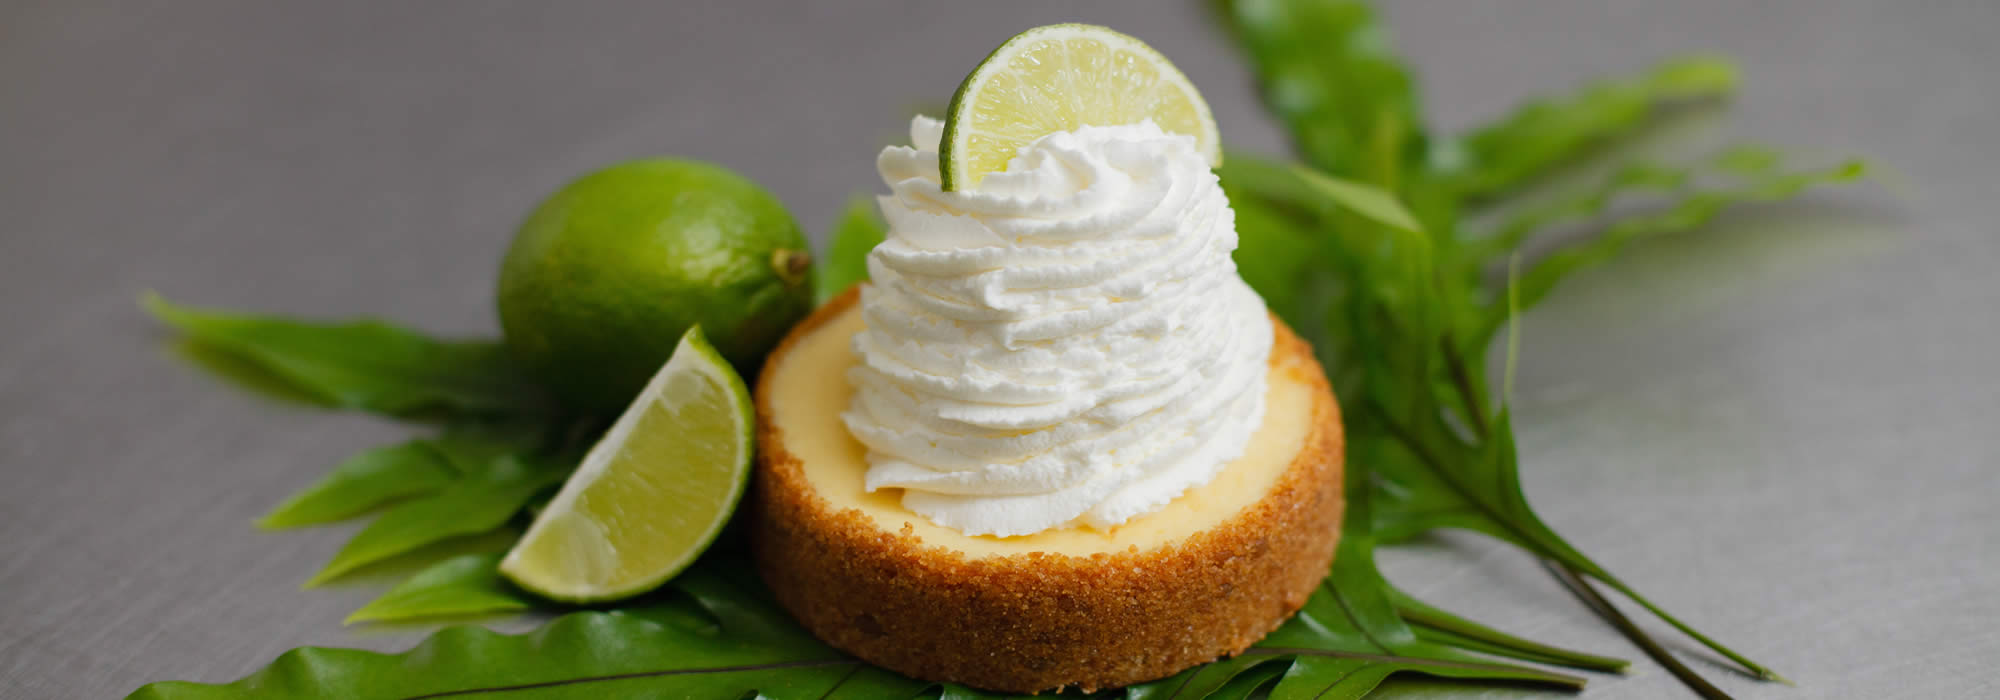 Small Key Lime Tart With Whipped Cream